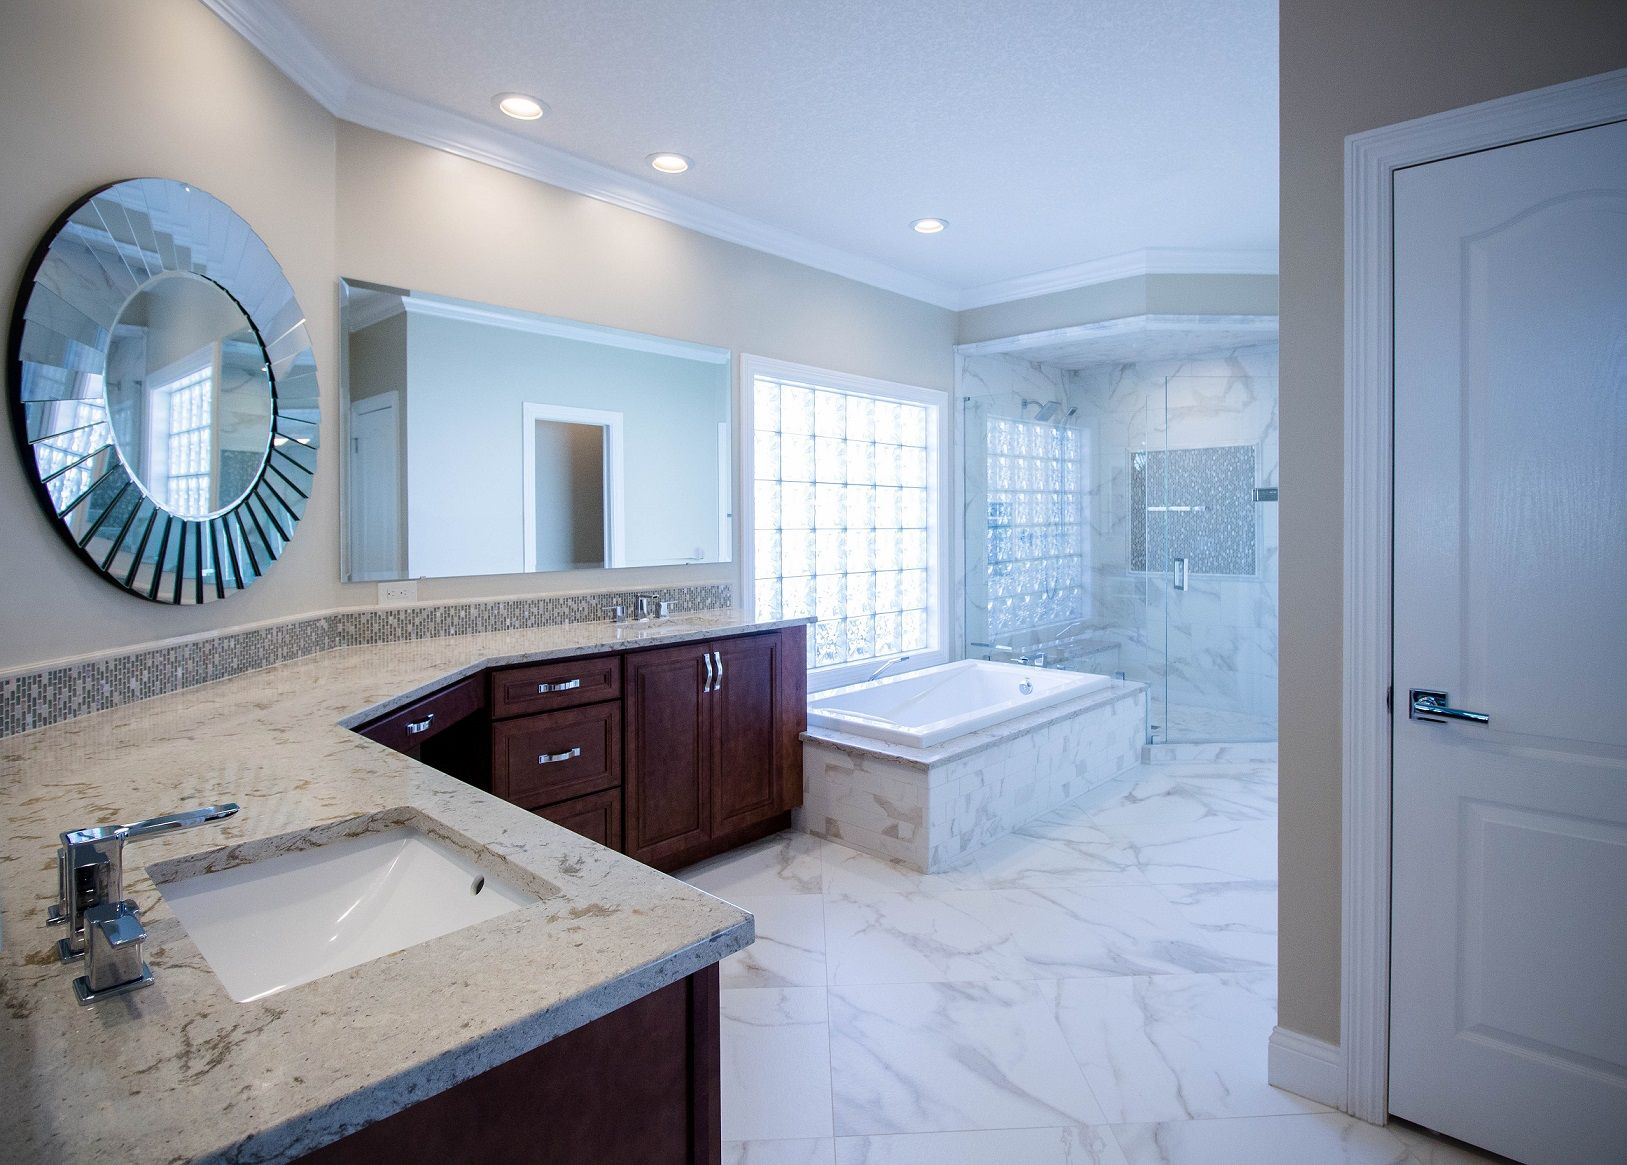 Modern & Elegant - Spa Retreat - Master Bathroom Remodel ...